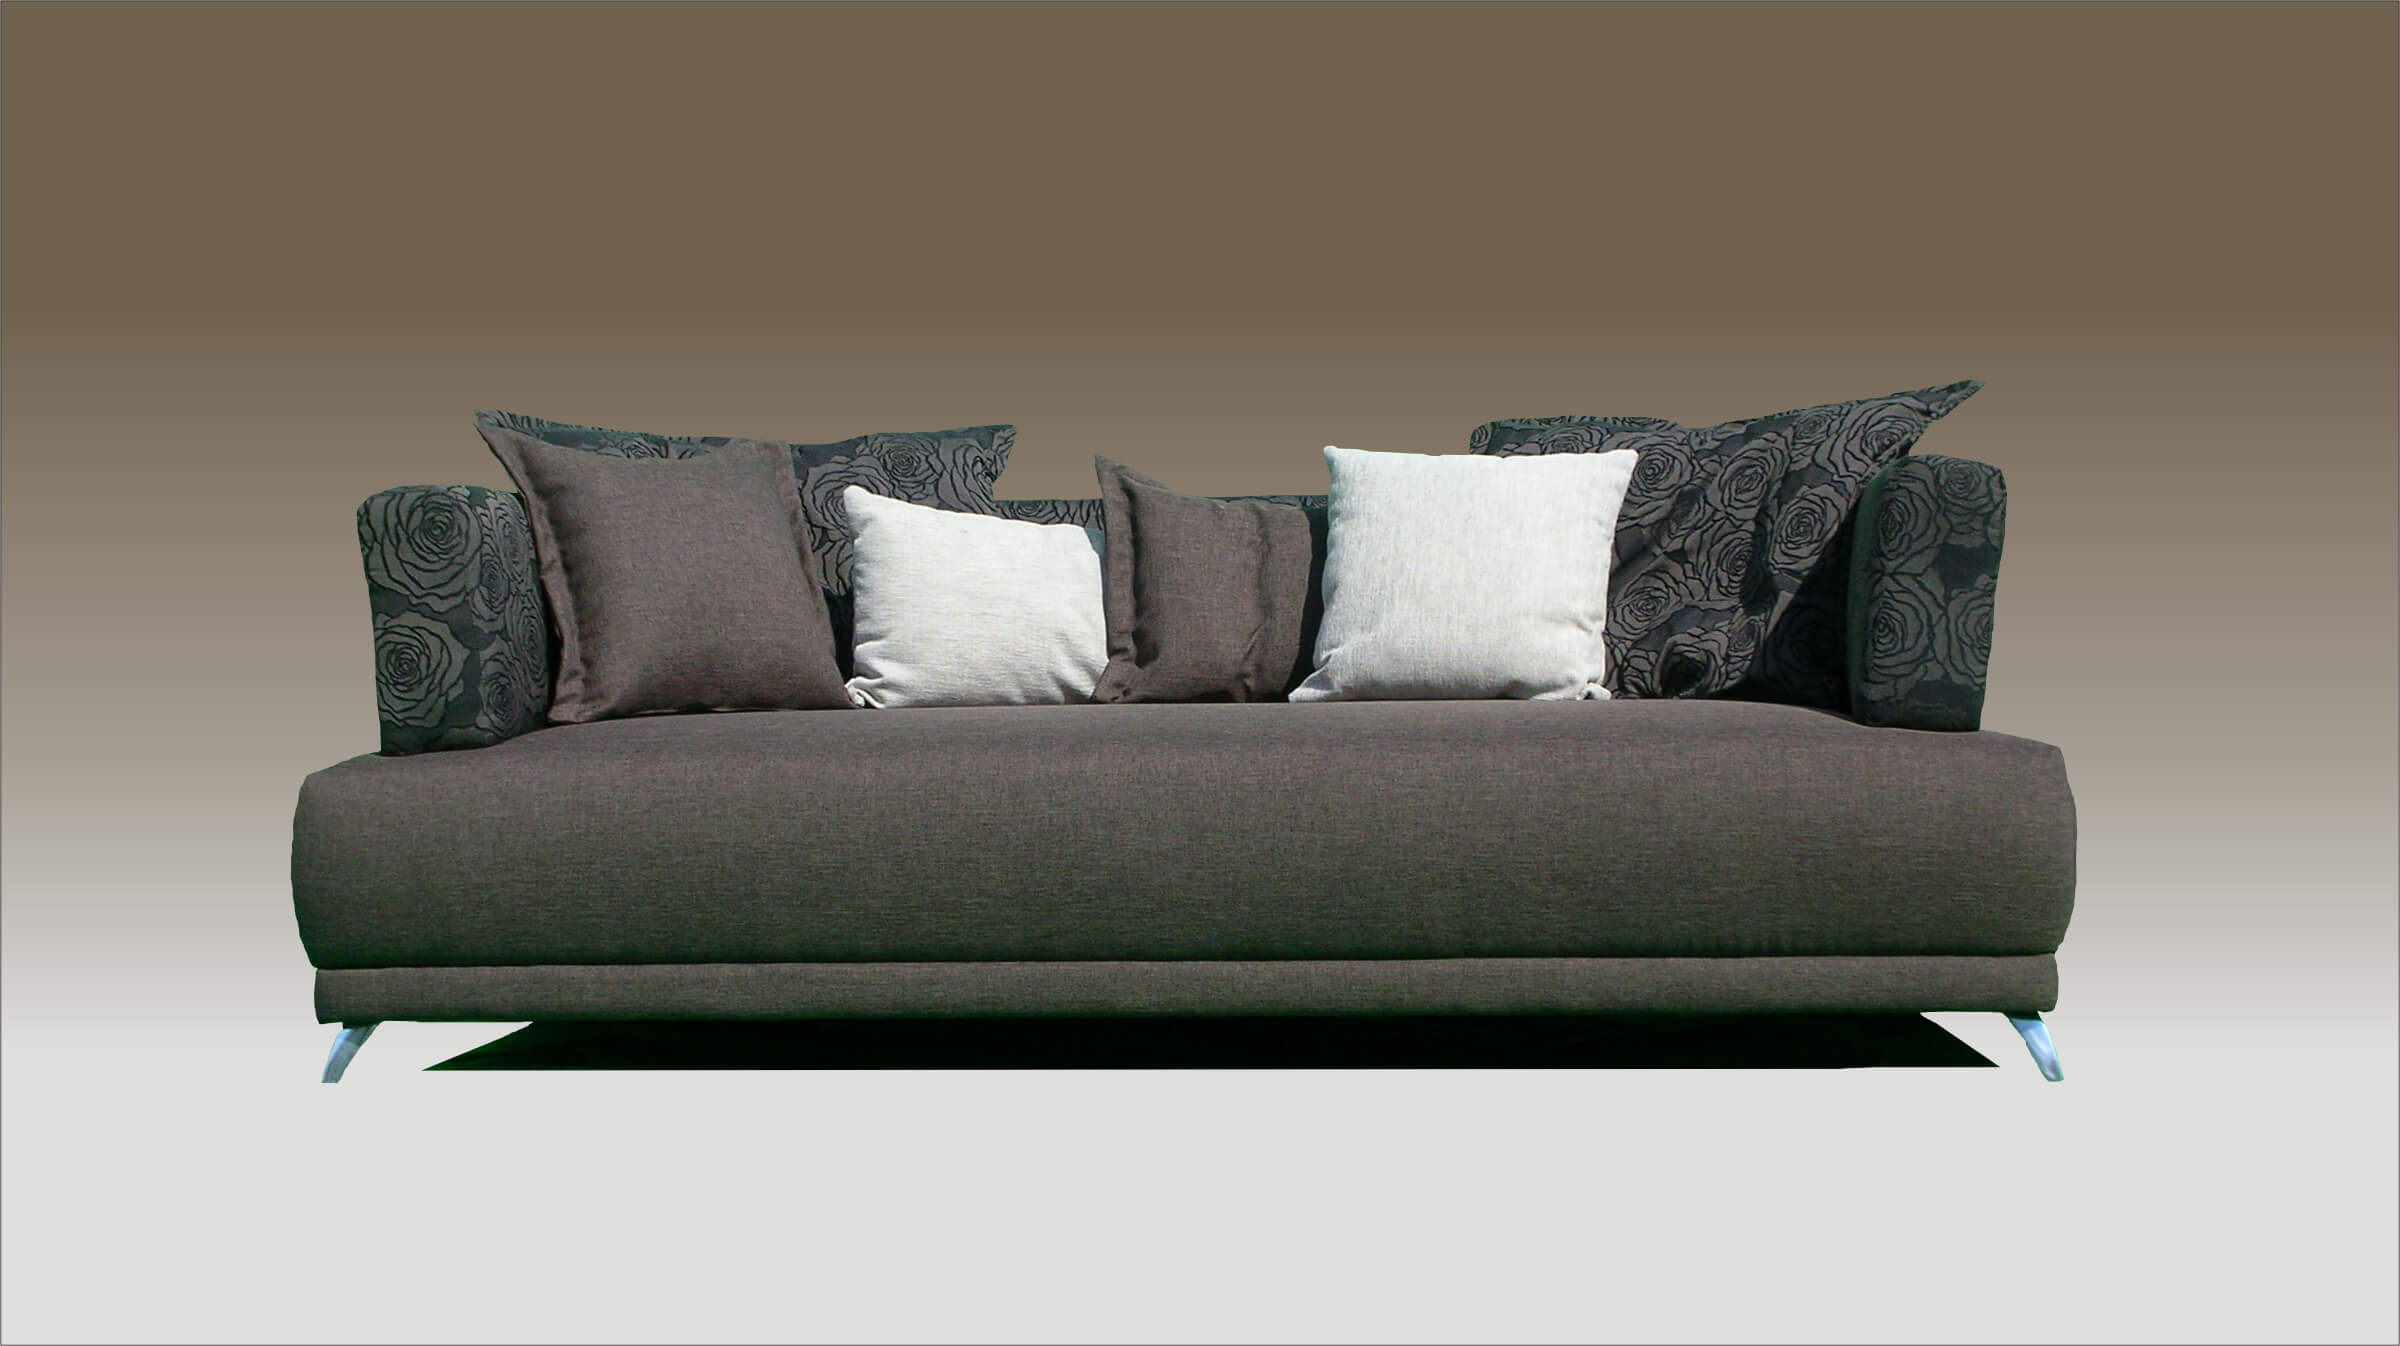 kleine sofas viel design komfort f r kleine r ume the lounge company. Black Bedroom Furniture Sets. Home Design Ideas